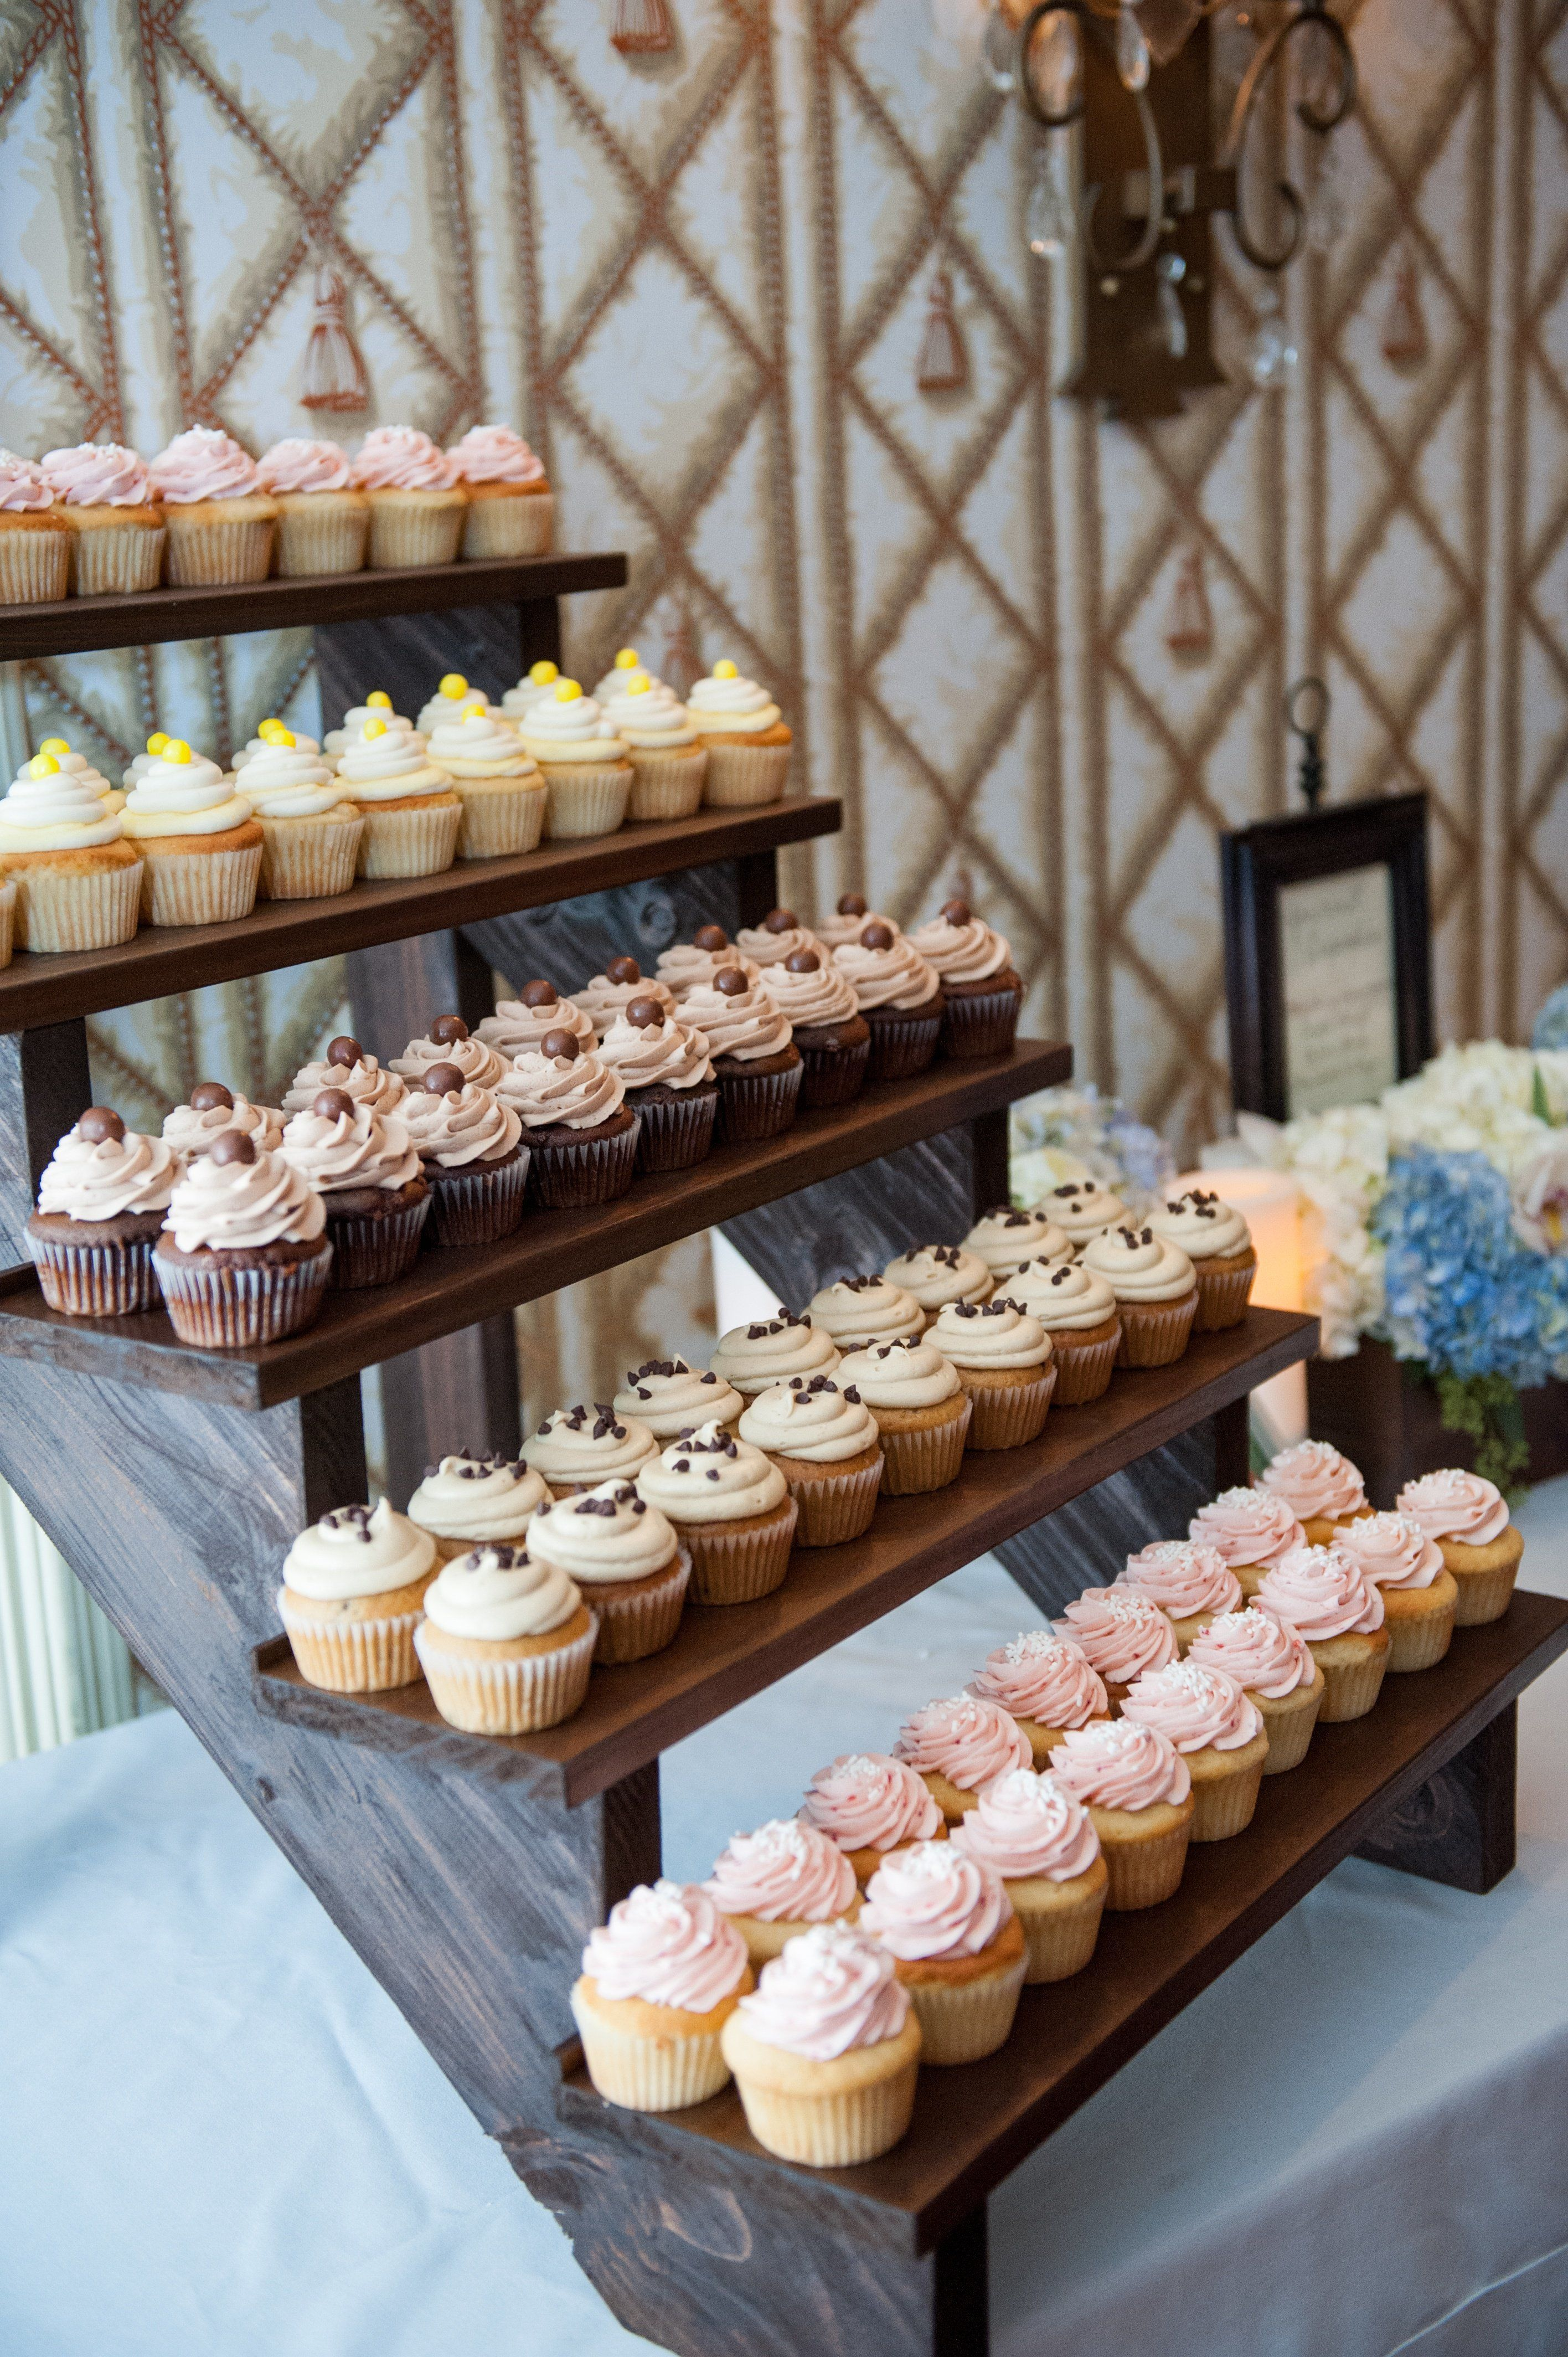 Need Wedding Ideas Check Out This Rustic Cake Display And See More Inspirational Photos On Theknot Dessert Bar Wedding Wedding Dessert Table Wedding Desserts